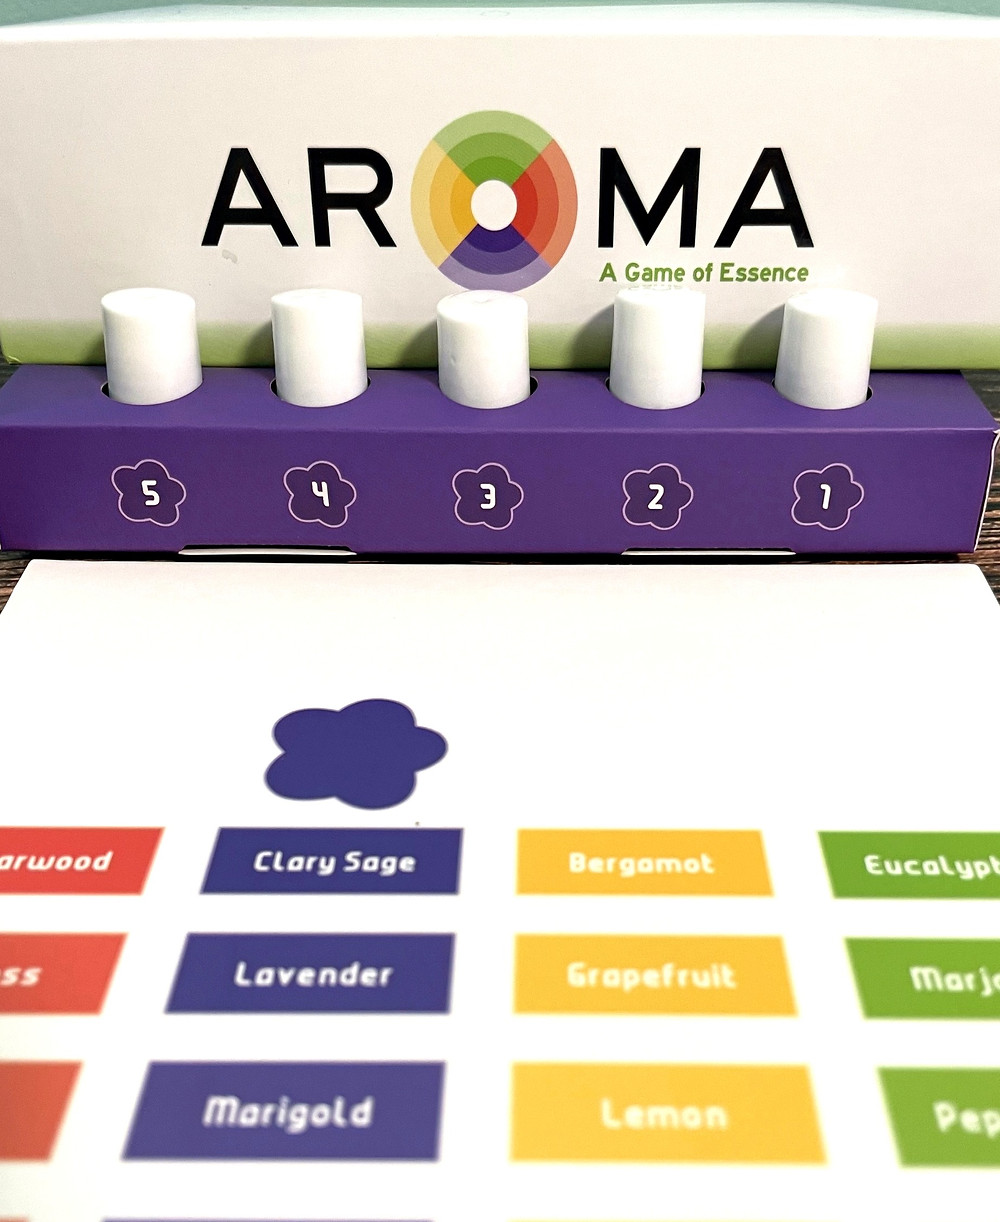 Aroma components